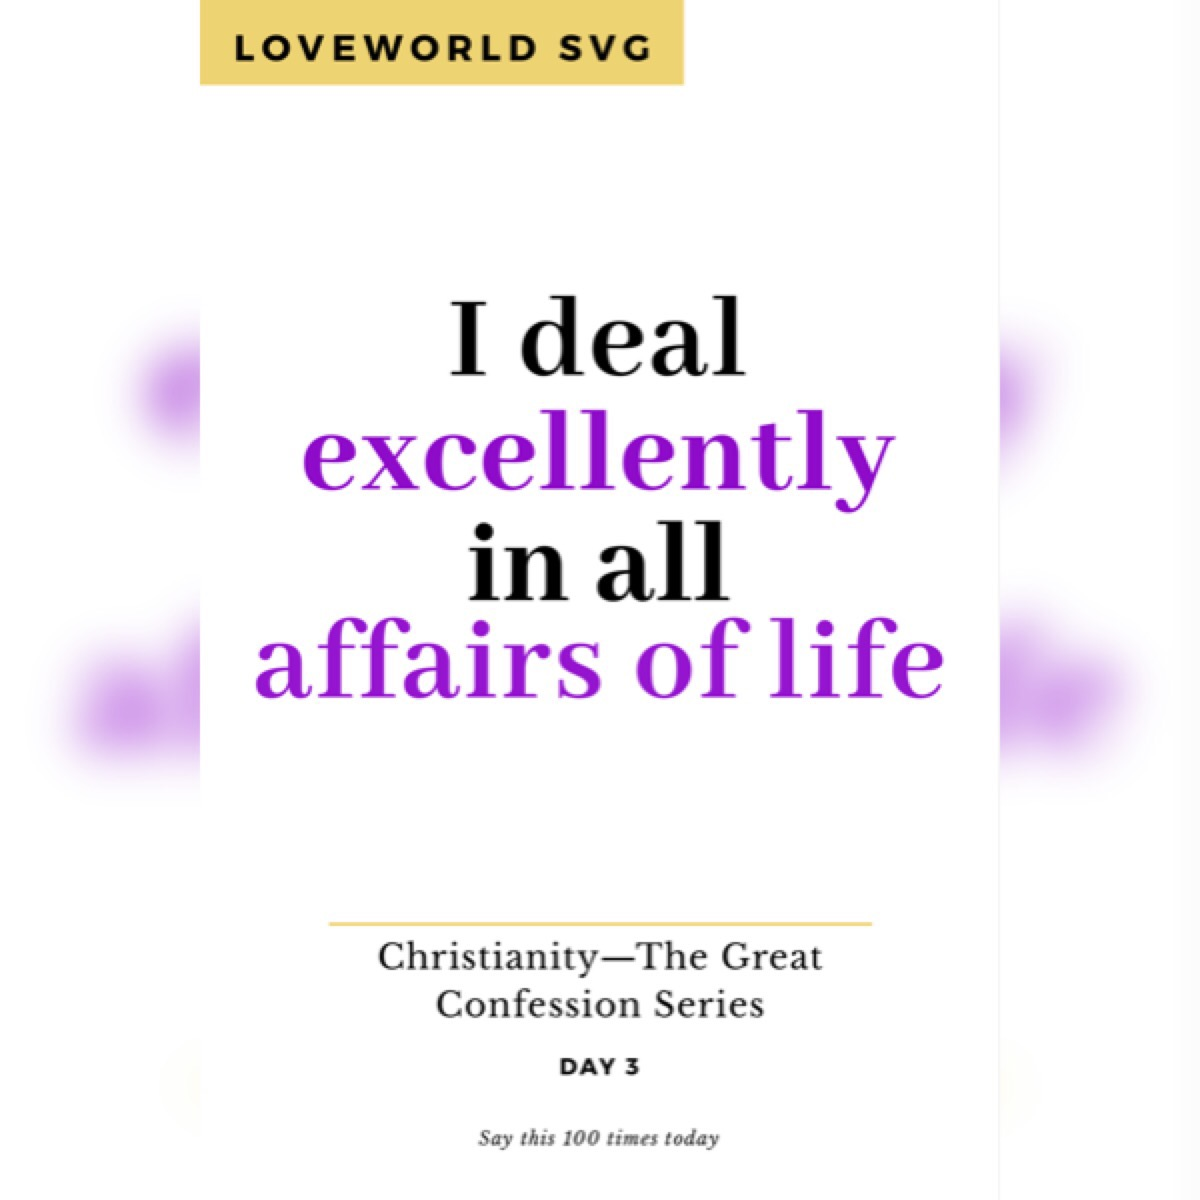 Christianity— The Great Confession Series